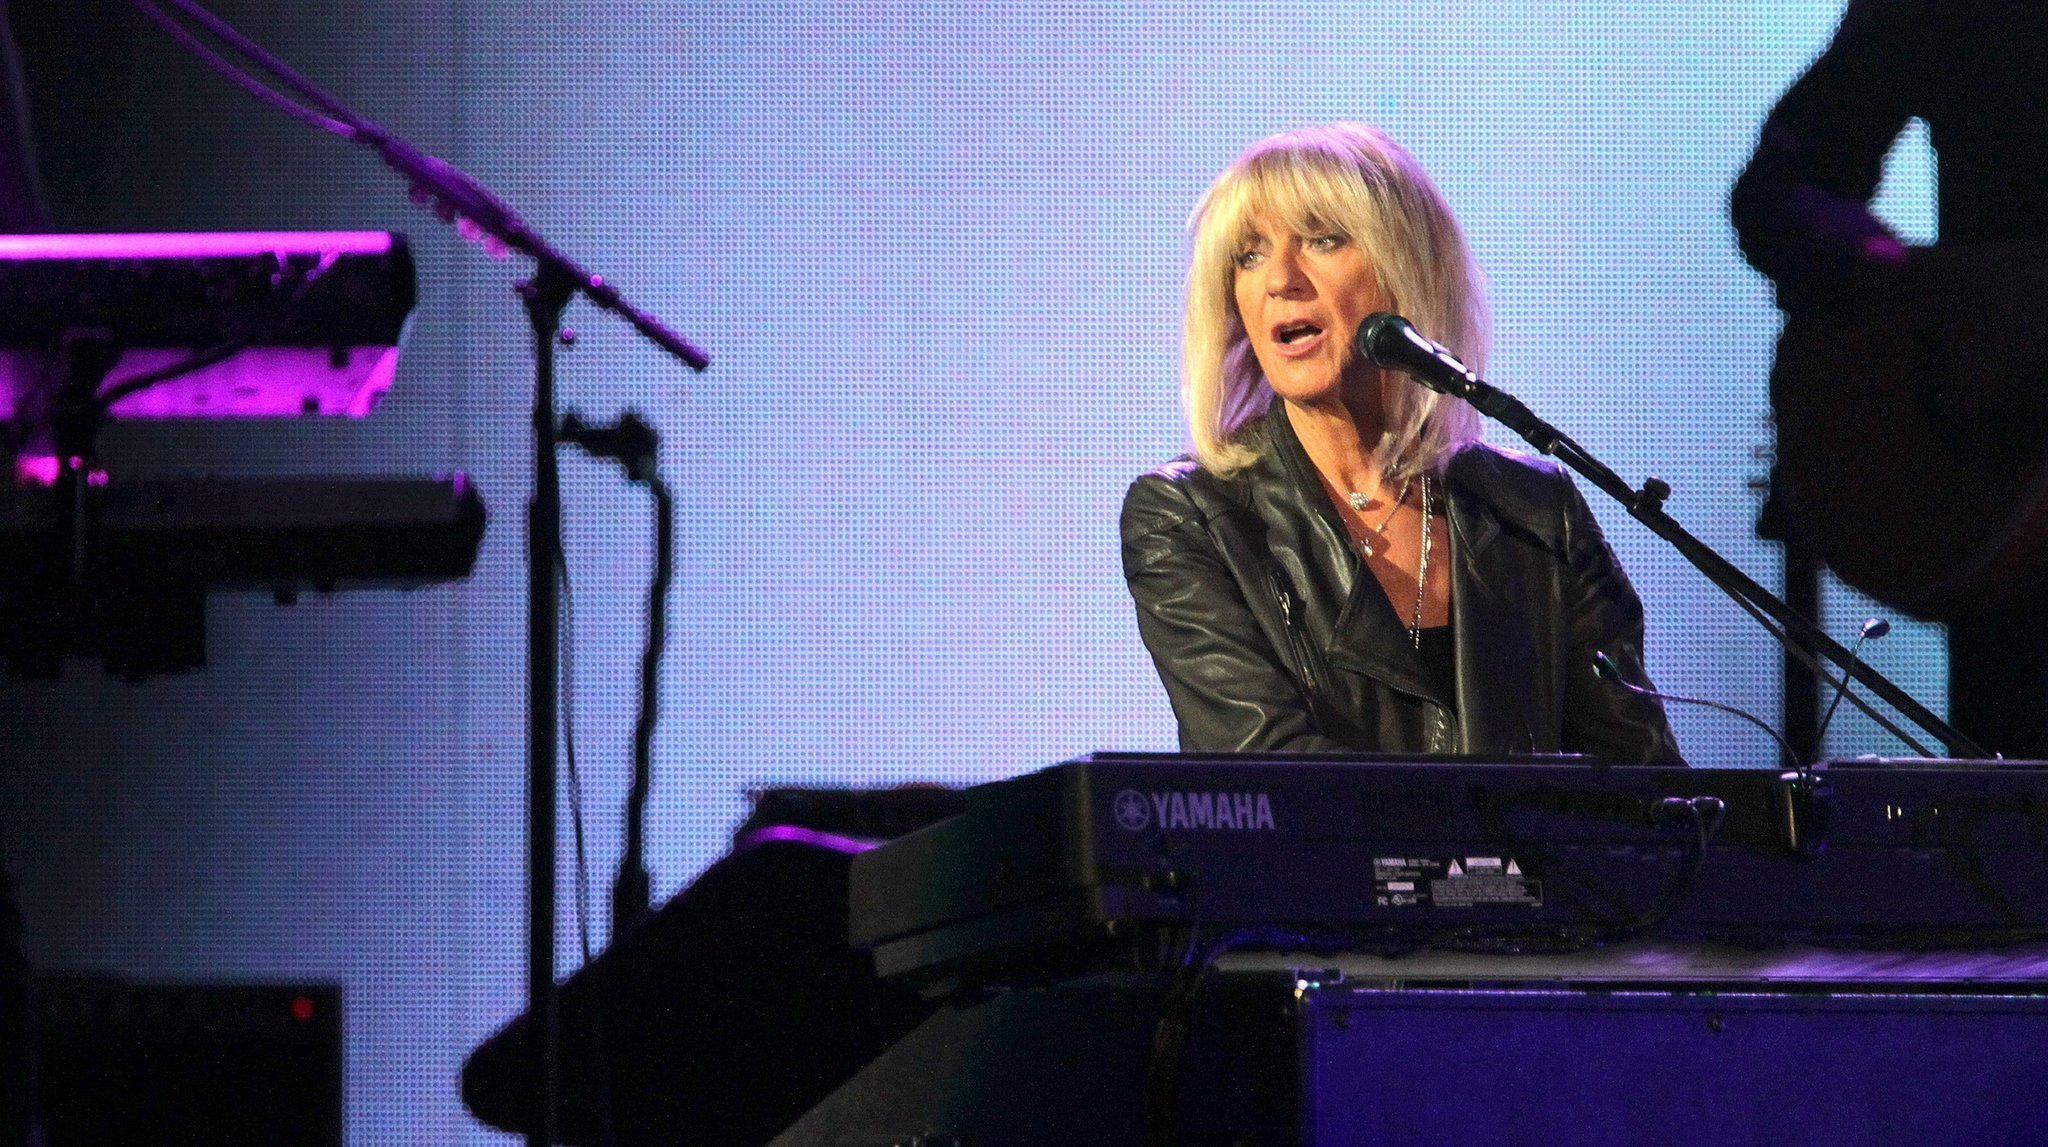 christine mcvie 39 s return lifts fleetwoo mac concert the san diego union tribune. Black Bedroom Furniture Sets. Home Design Ideas